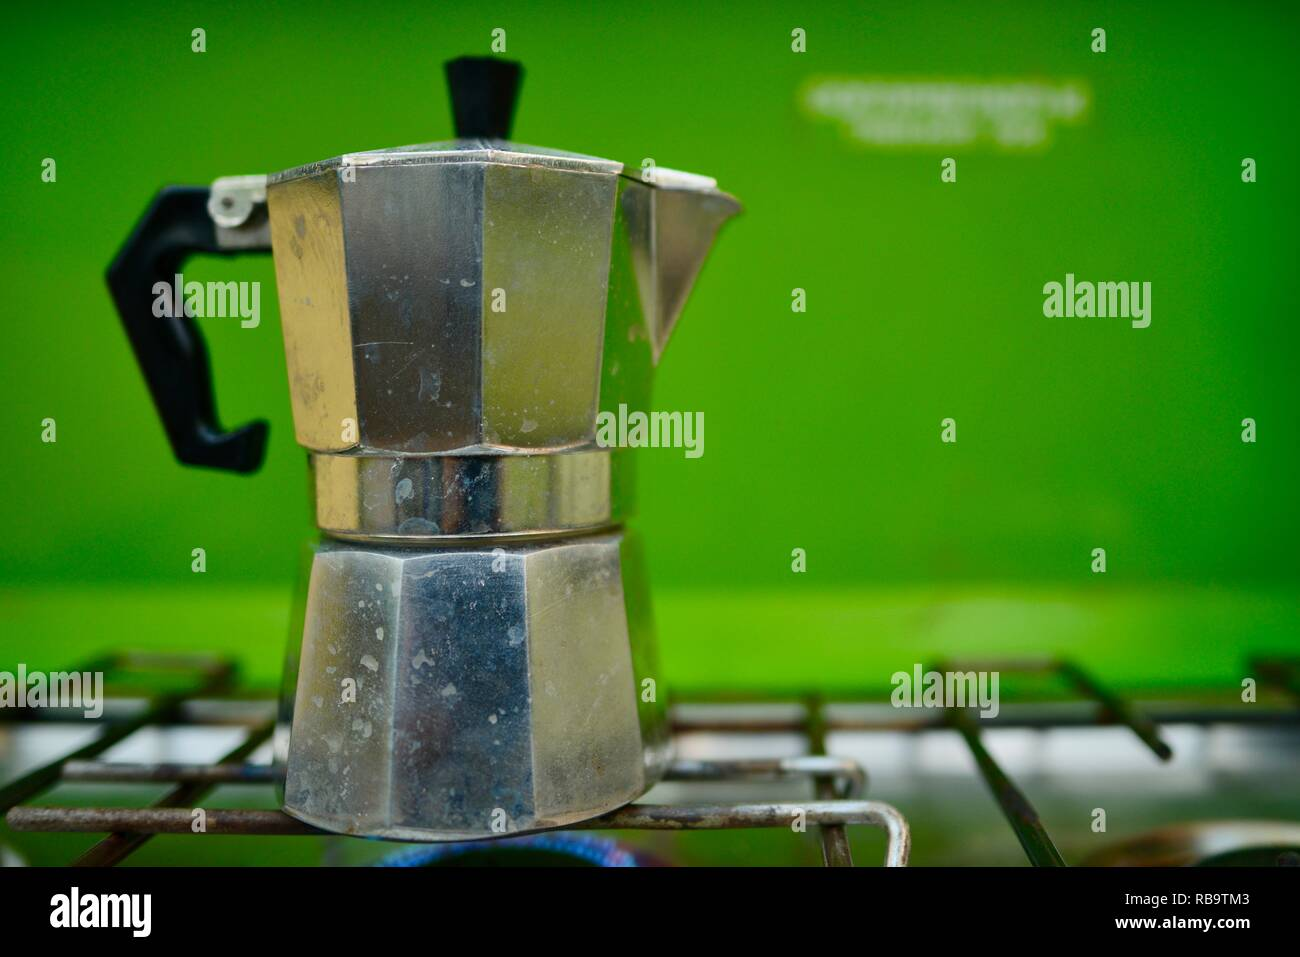 A Stovetop Espresso Maker on and old style camping gas stove, Smalleys Beach Camp Ground, Cape Hillsborough National Park, Qld, Australia - Stock Image